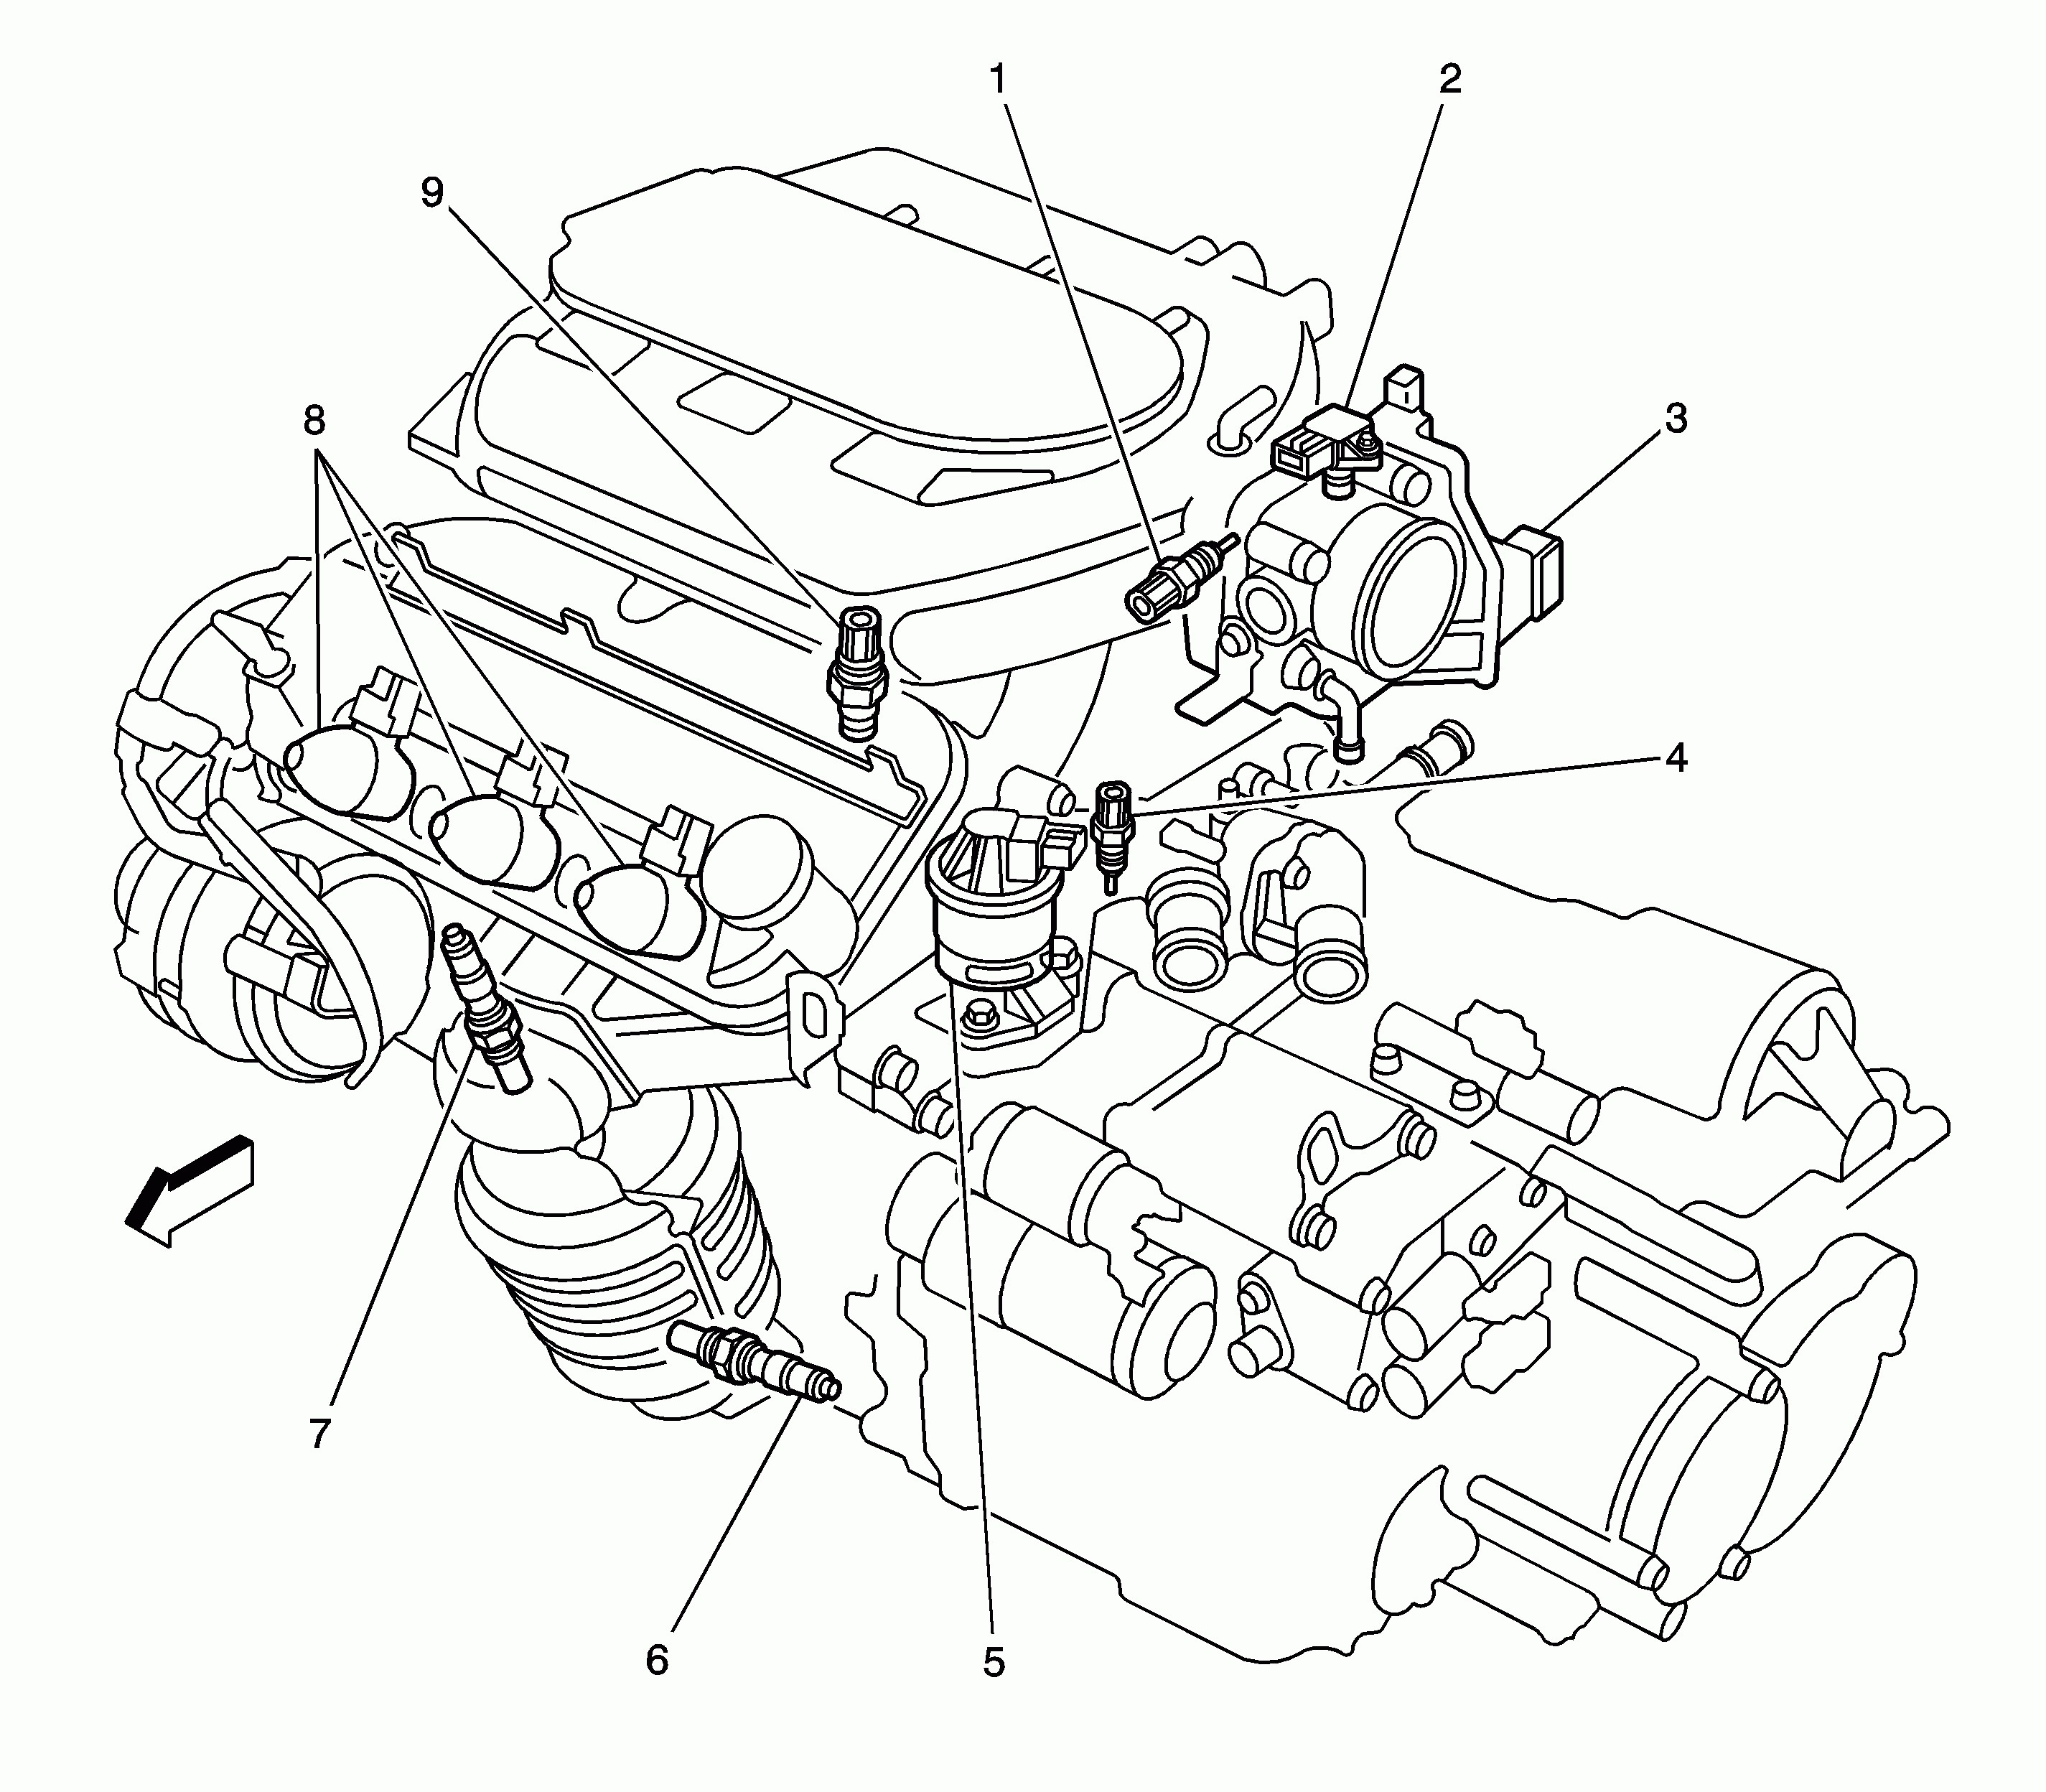 1997 Chevy Lumina 3 1 Engine Diagram Opinions About Wiring Corsica 95 Imageresizertool Com Vacuum 93